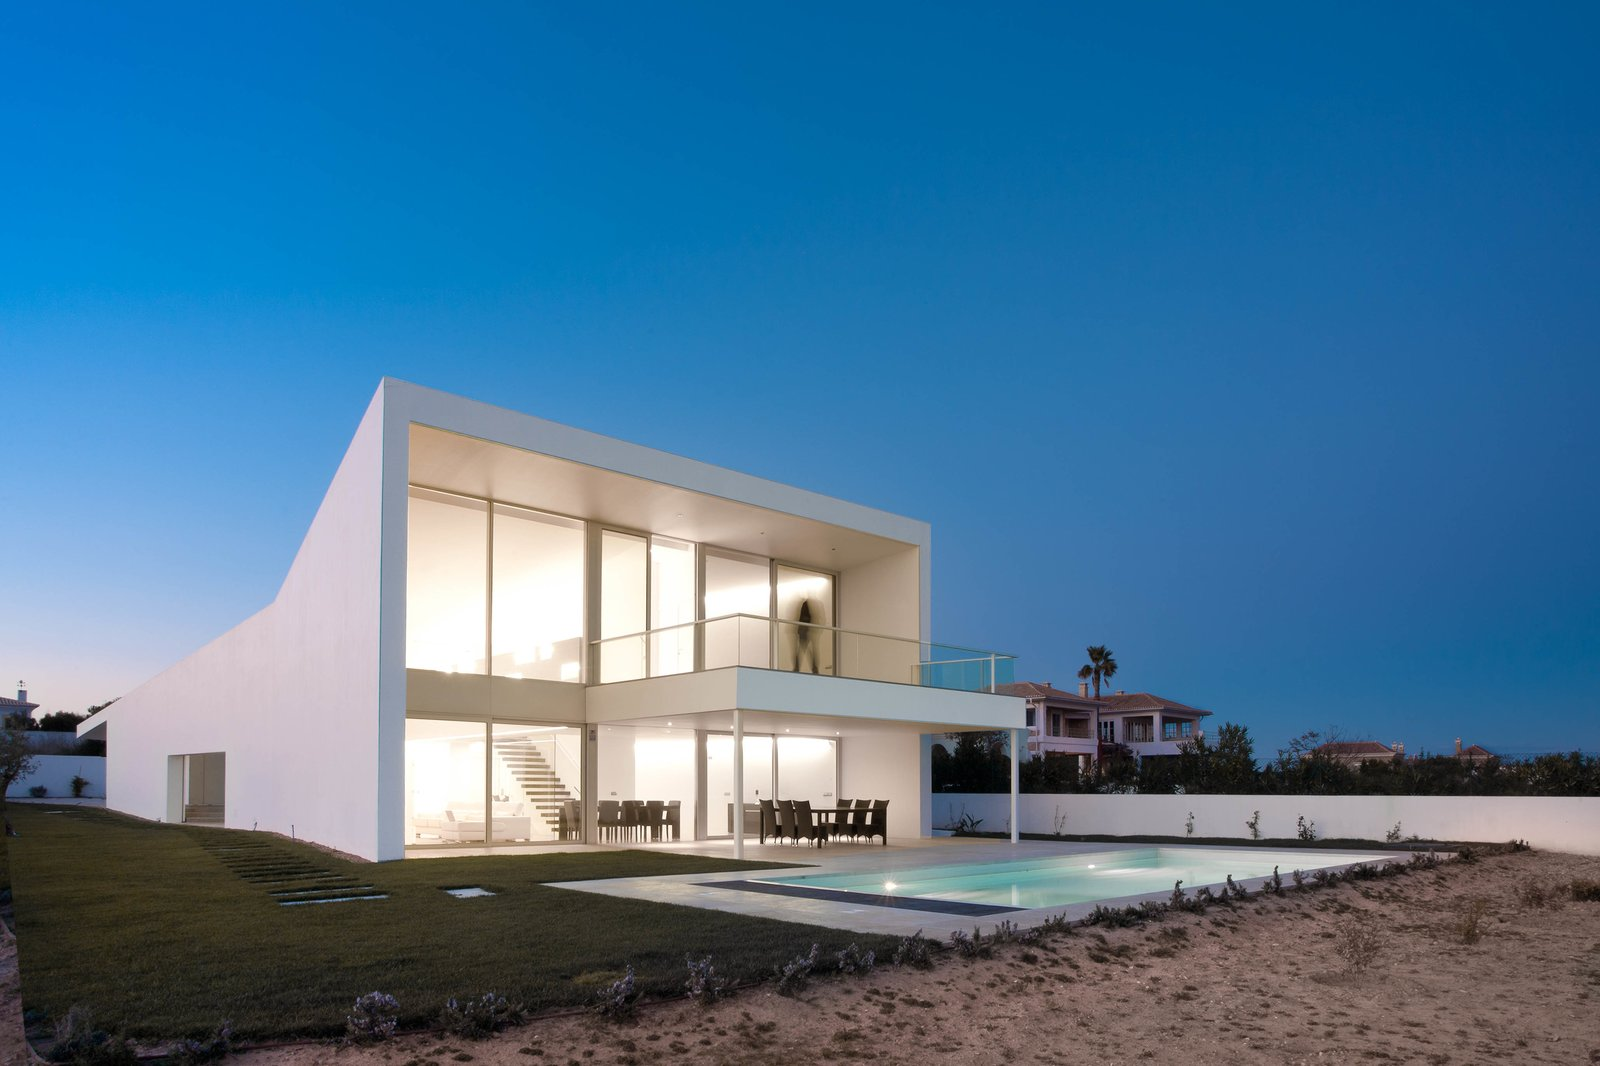 Photo 1 of 9 in Make This Seaside Villa in Southern Portugal Your Own Private Resort For $2M